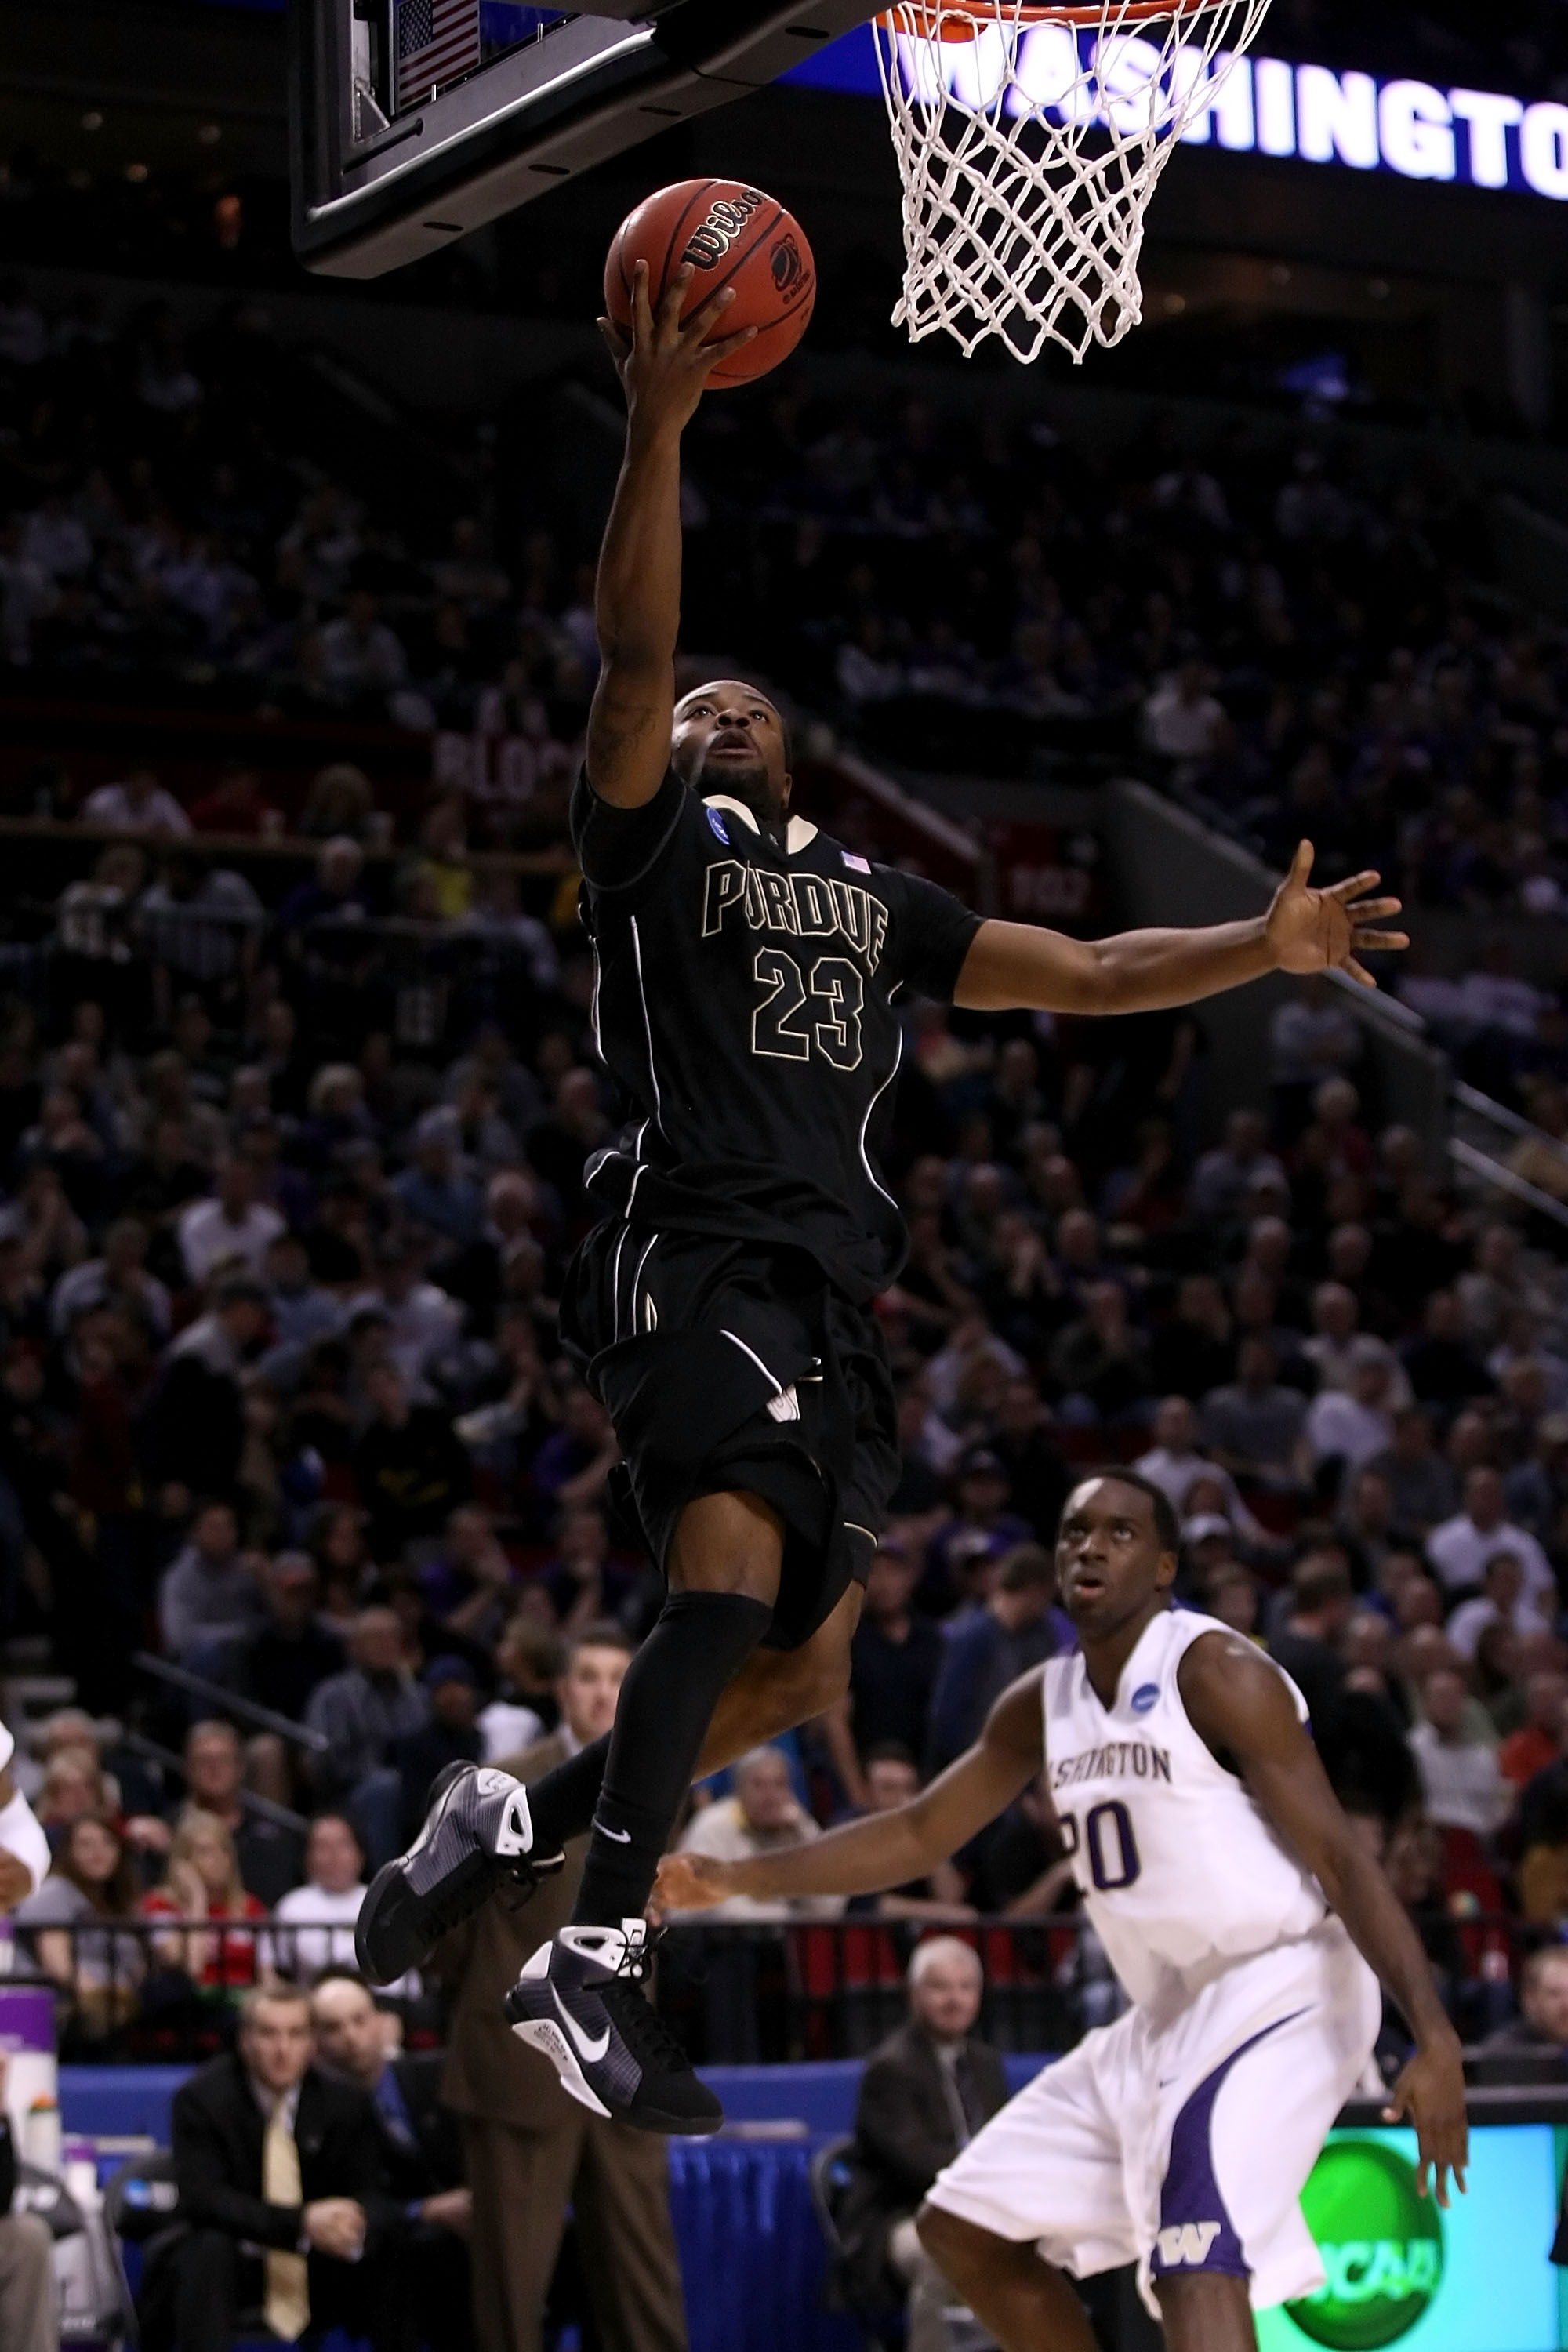 PORTLAND, OR - MARCH 21:  Lewis Jackson #23 of the Purdue Boilermakers goes up for a layup as Quincy Pondexter #20 of the Washington Huskies looks on during the second round of the NCAA Division I Men's Basketball Tournament at the Rose Garden on March 21